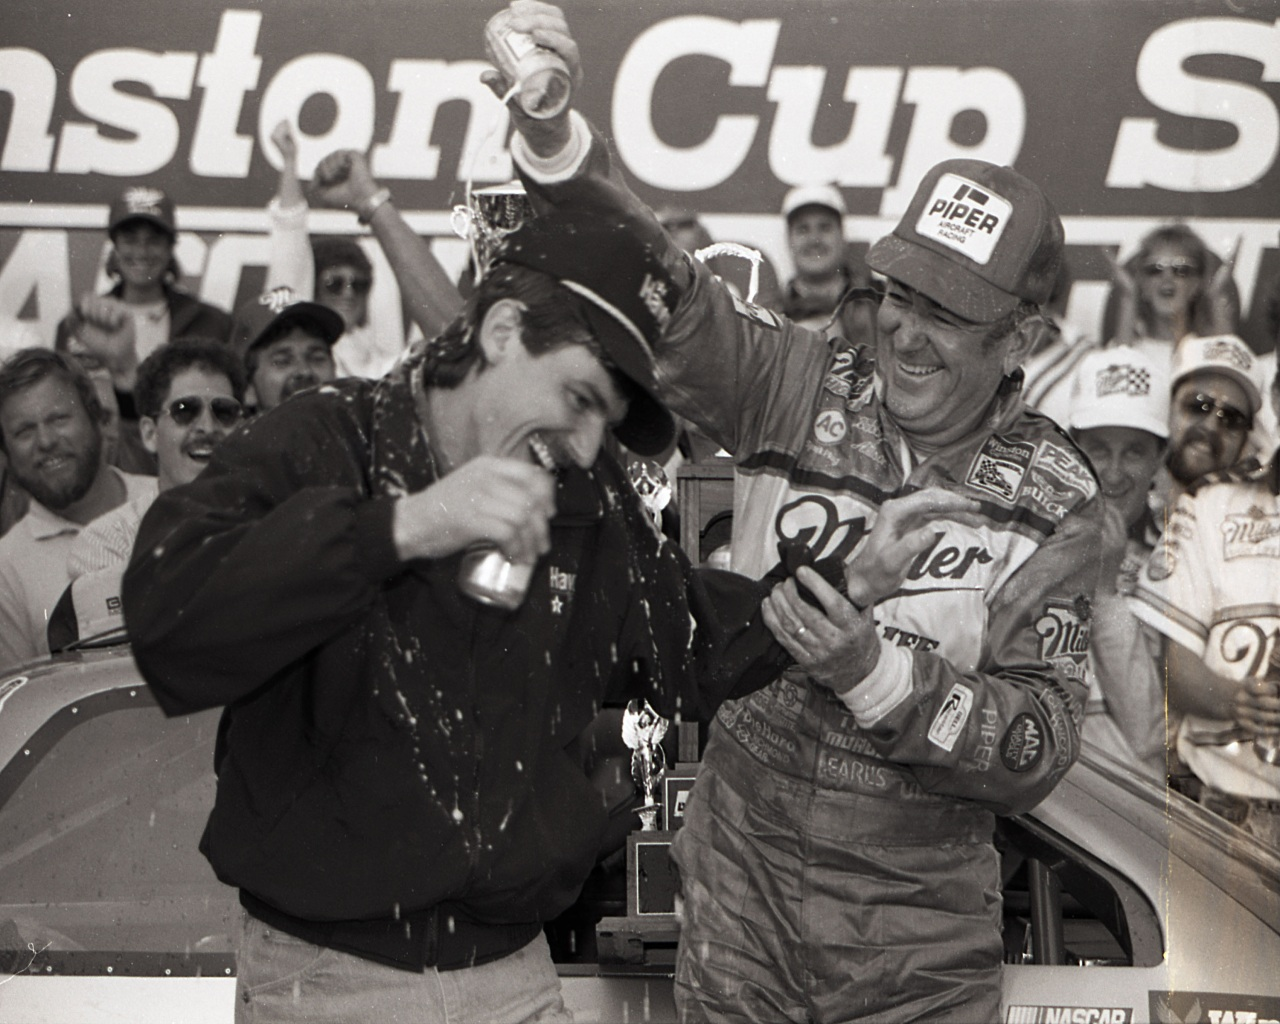 NASCAR driver Davey Allison remembered for spirit, unfulfilled potential years after sudden death